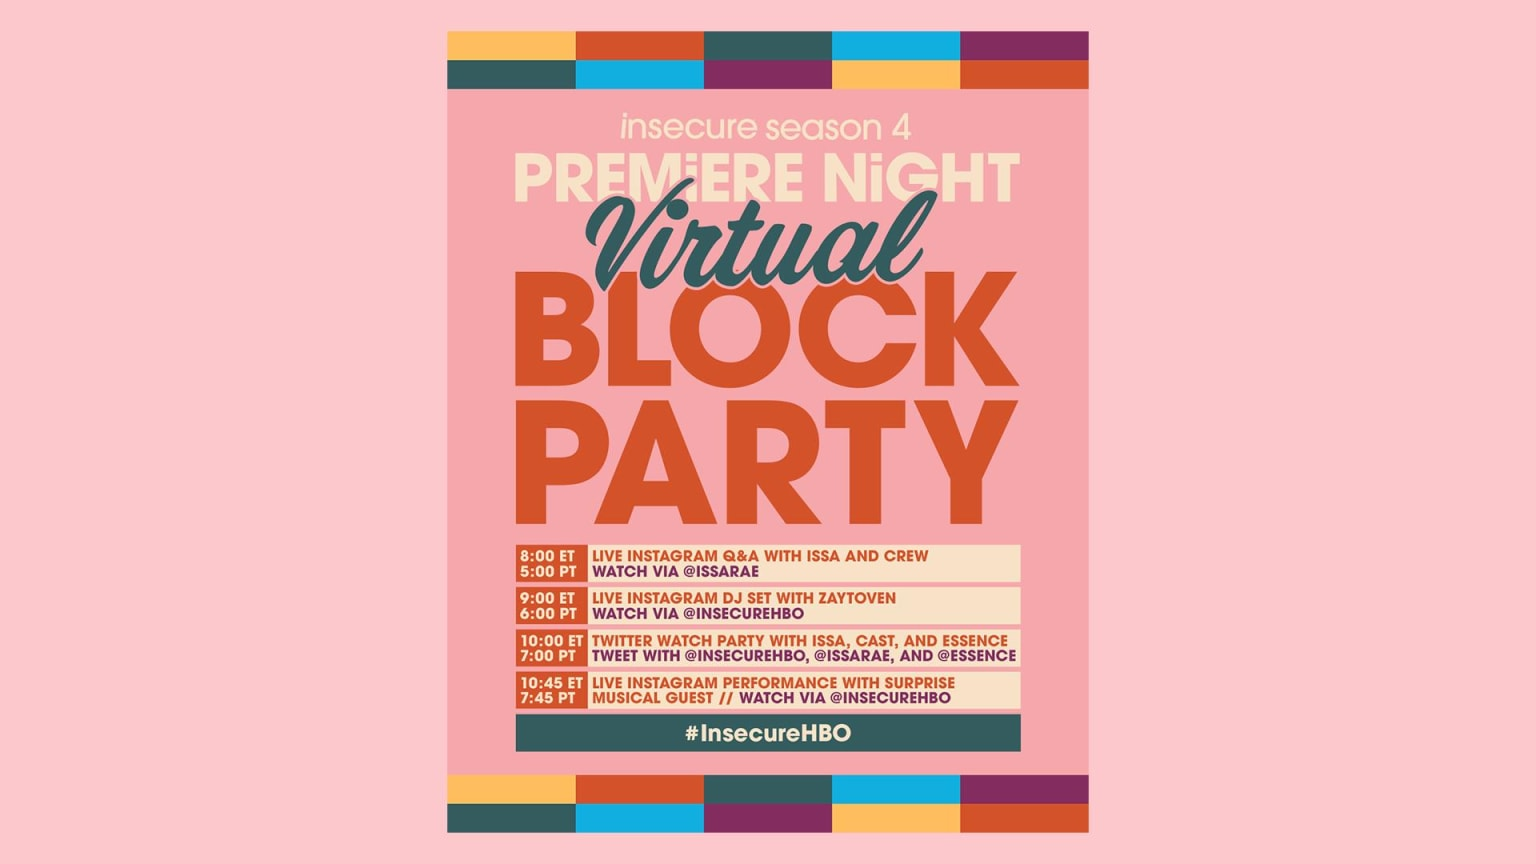 Insecure Virtual Block Party